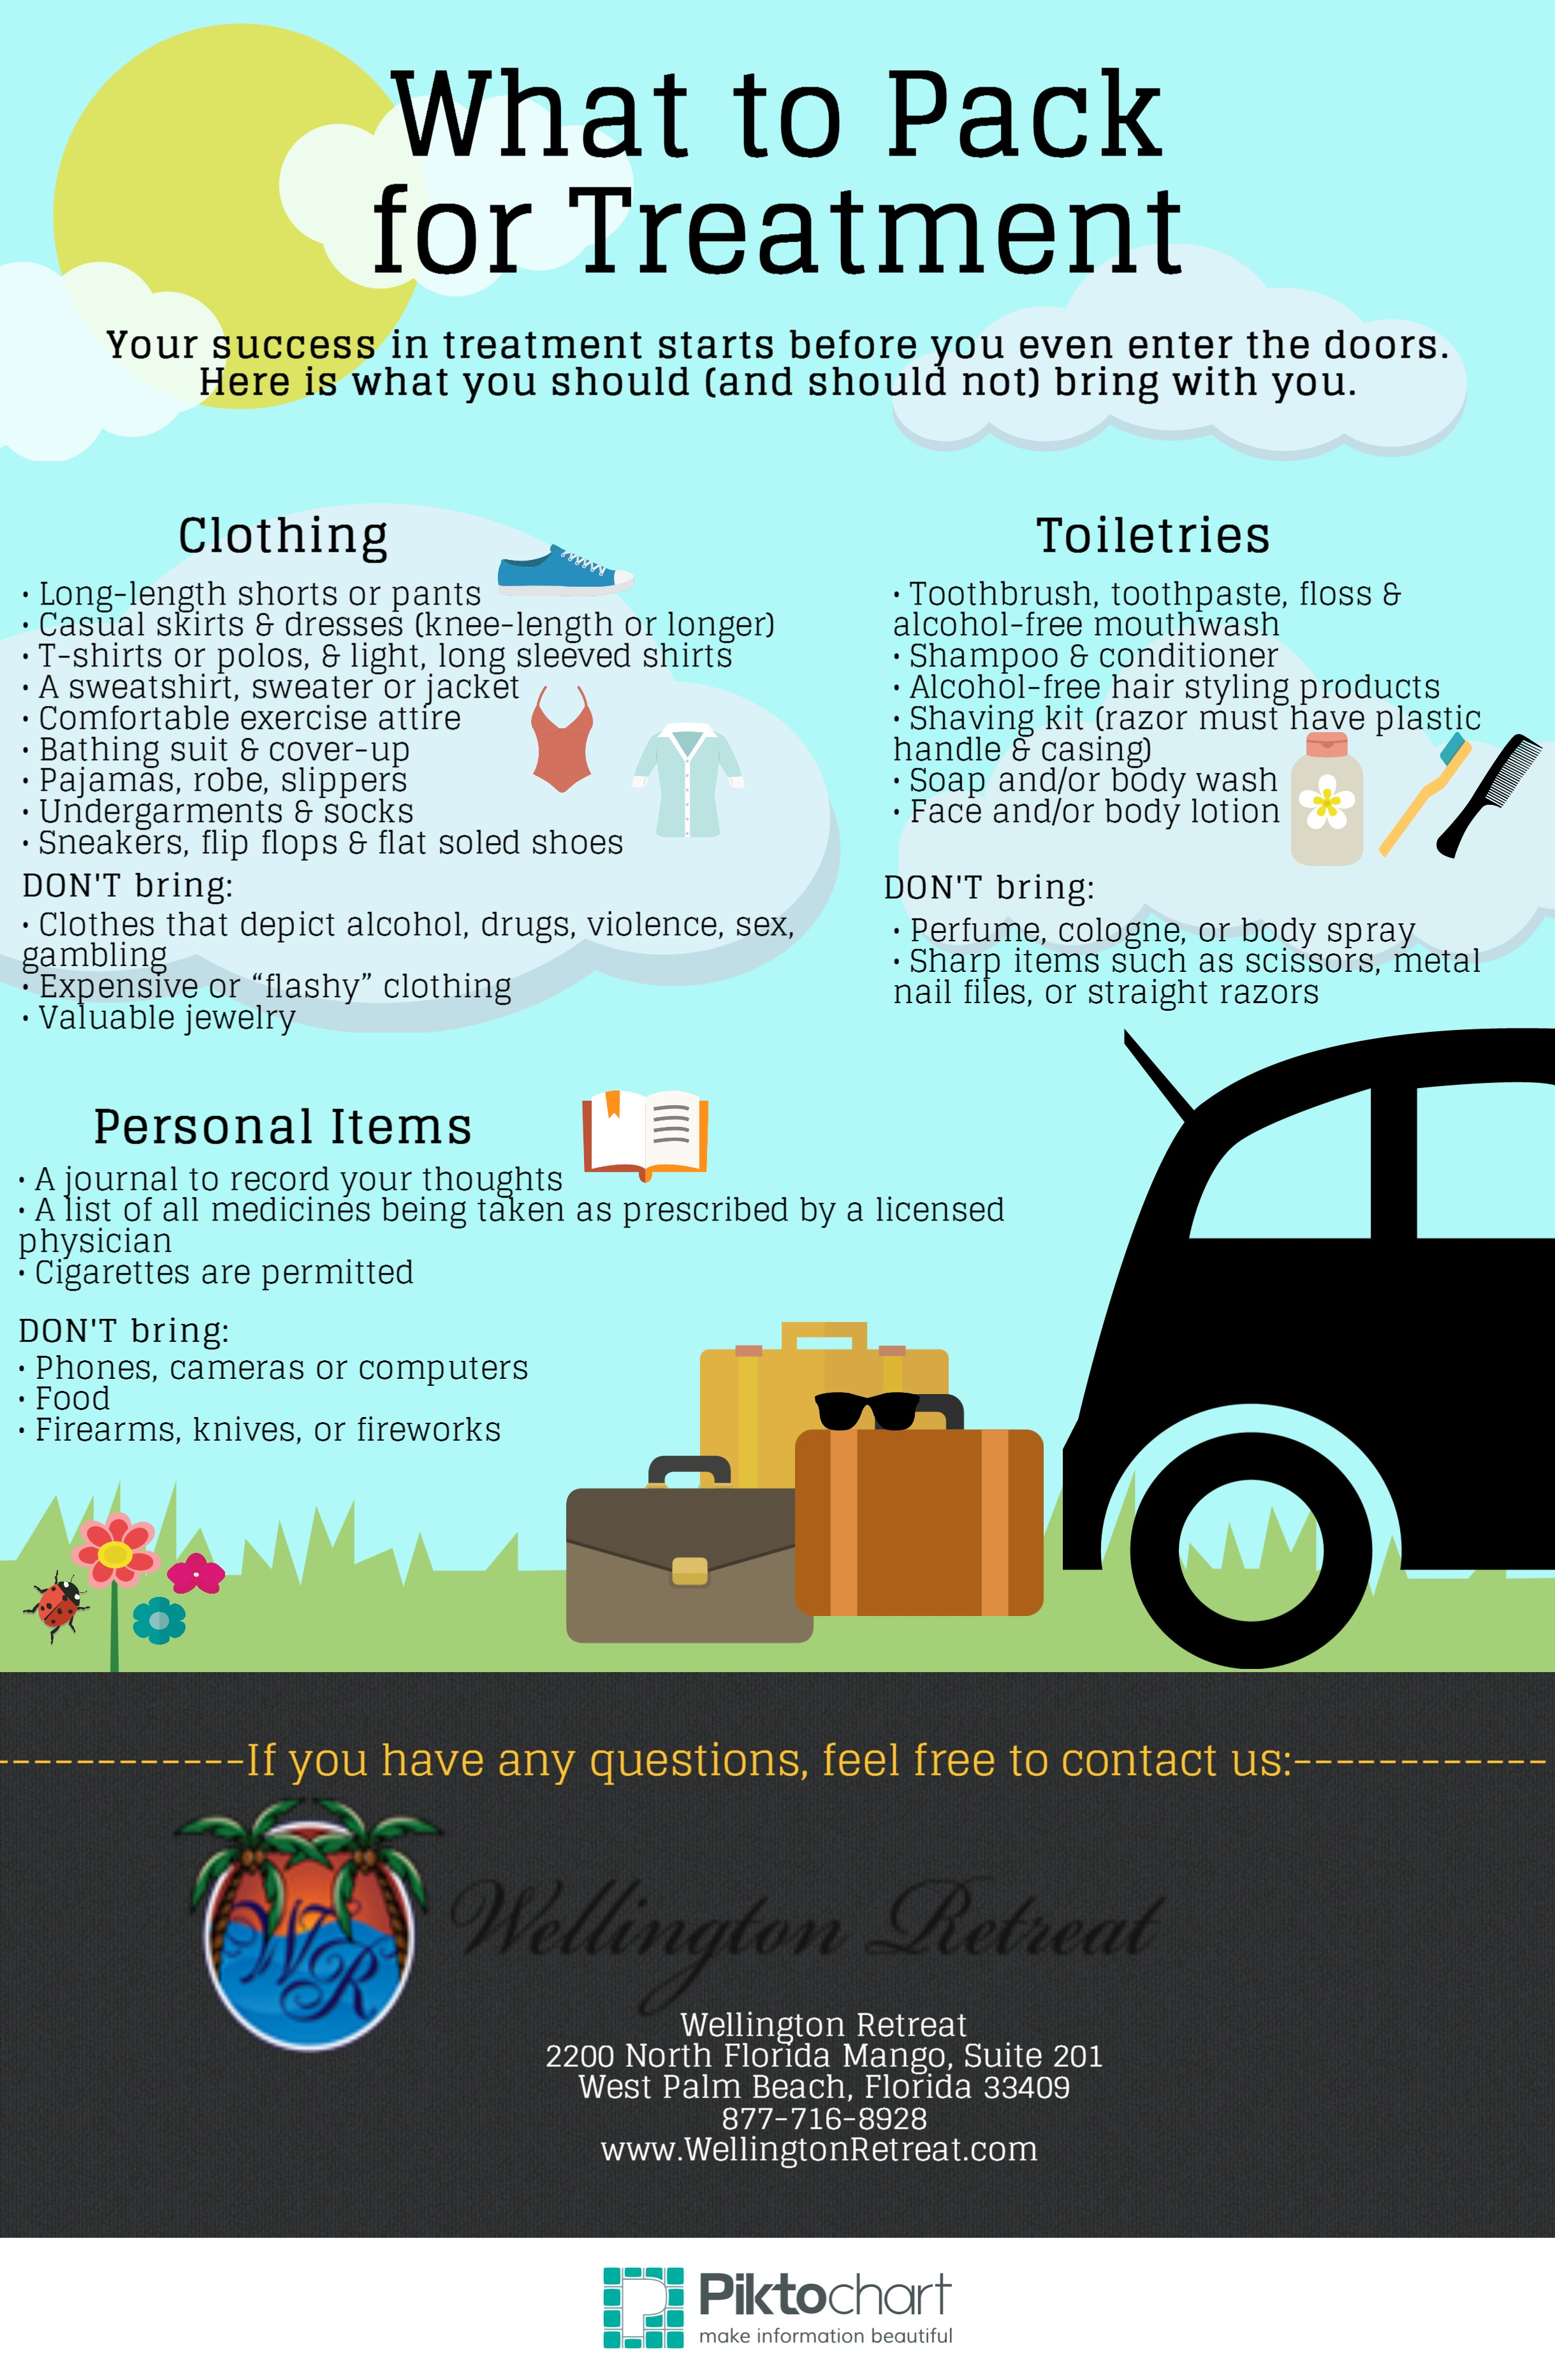 What to Pack for Treatment Infographic